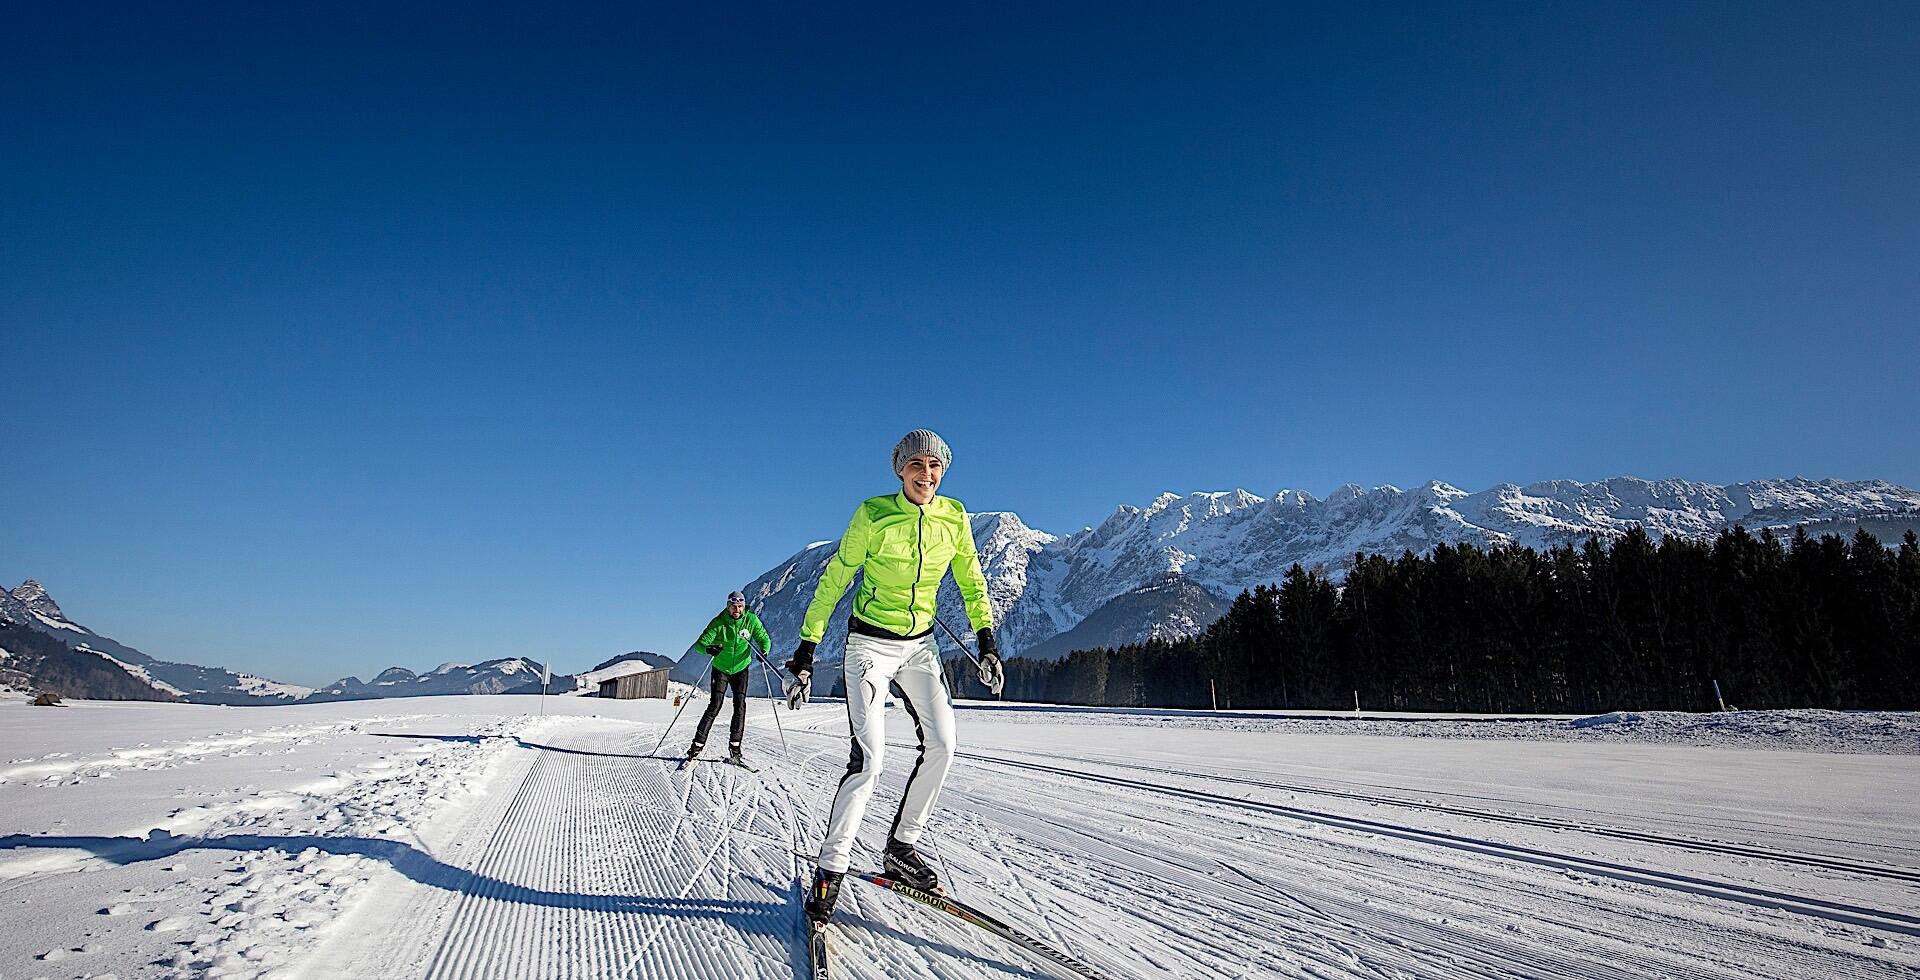 Cross-country Skiing at Romantik Hotel Schloss Pichlarn, Austria